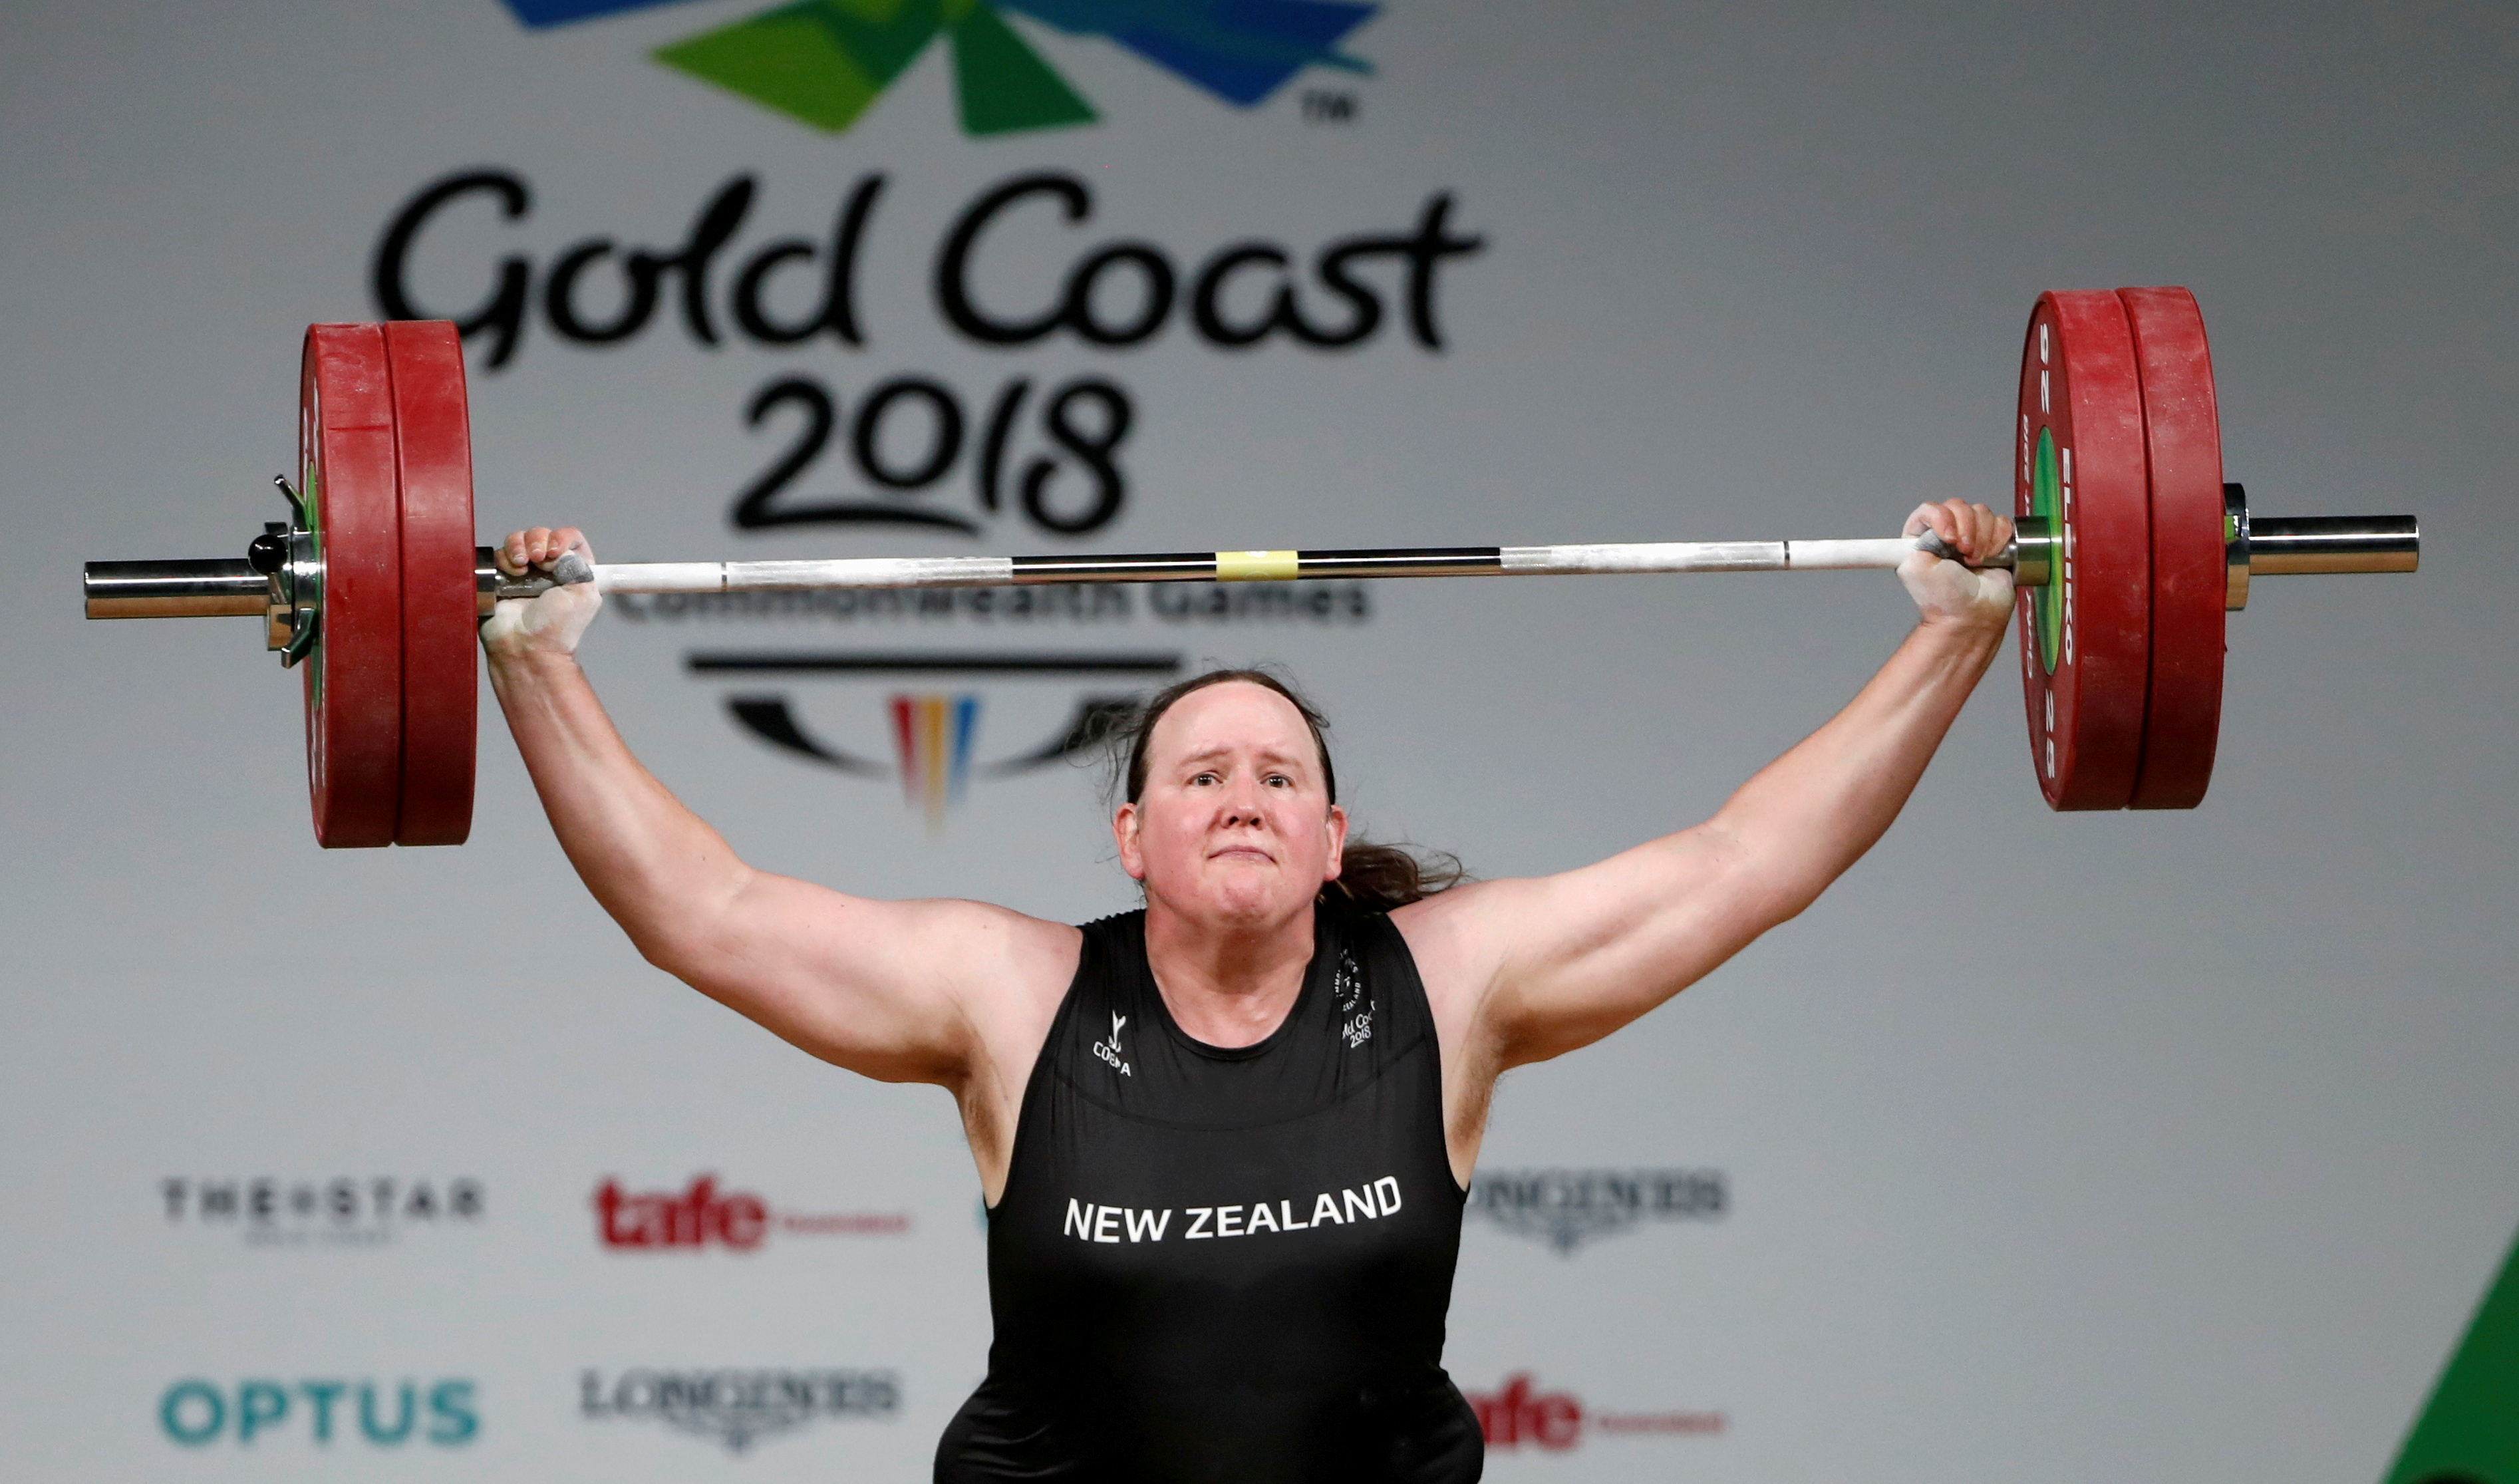 Weightlifting - Gold Coast 2018 Commonwealth Games - Women's +90kg - Final - Carrara Sports Arena 1 - Gold Coast, Australia - April 9, 2018. Laurel Hubbard of New Zealand competes. REUTERS/Paul Childs/File Photo